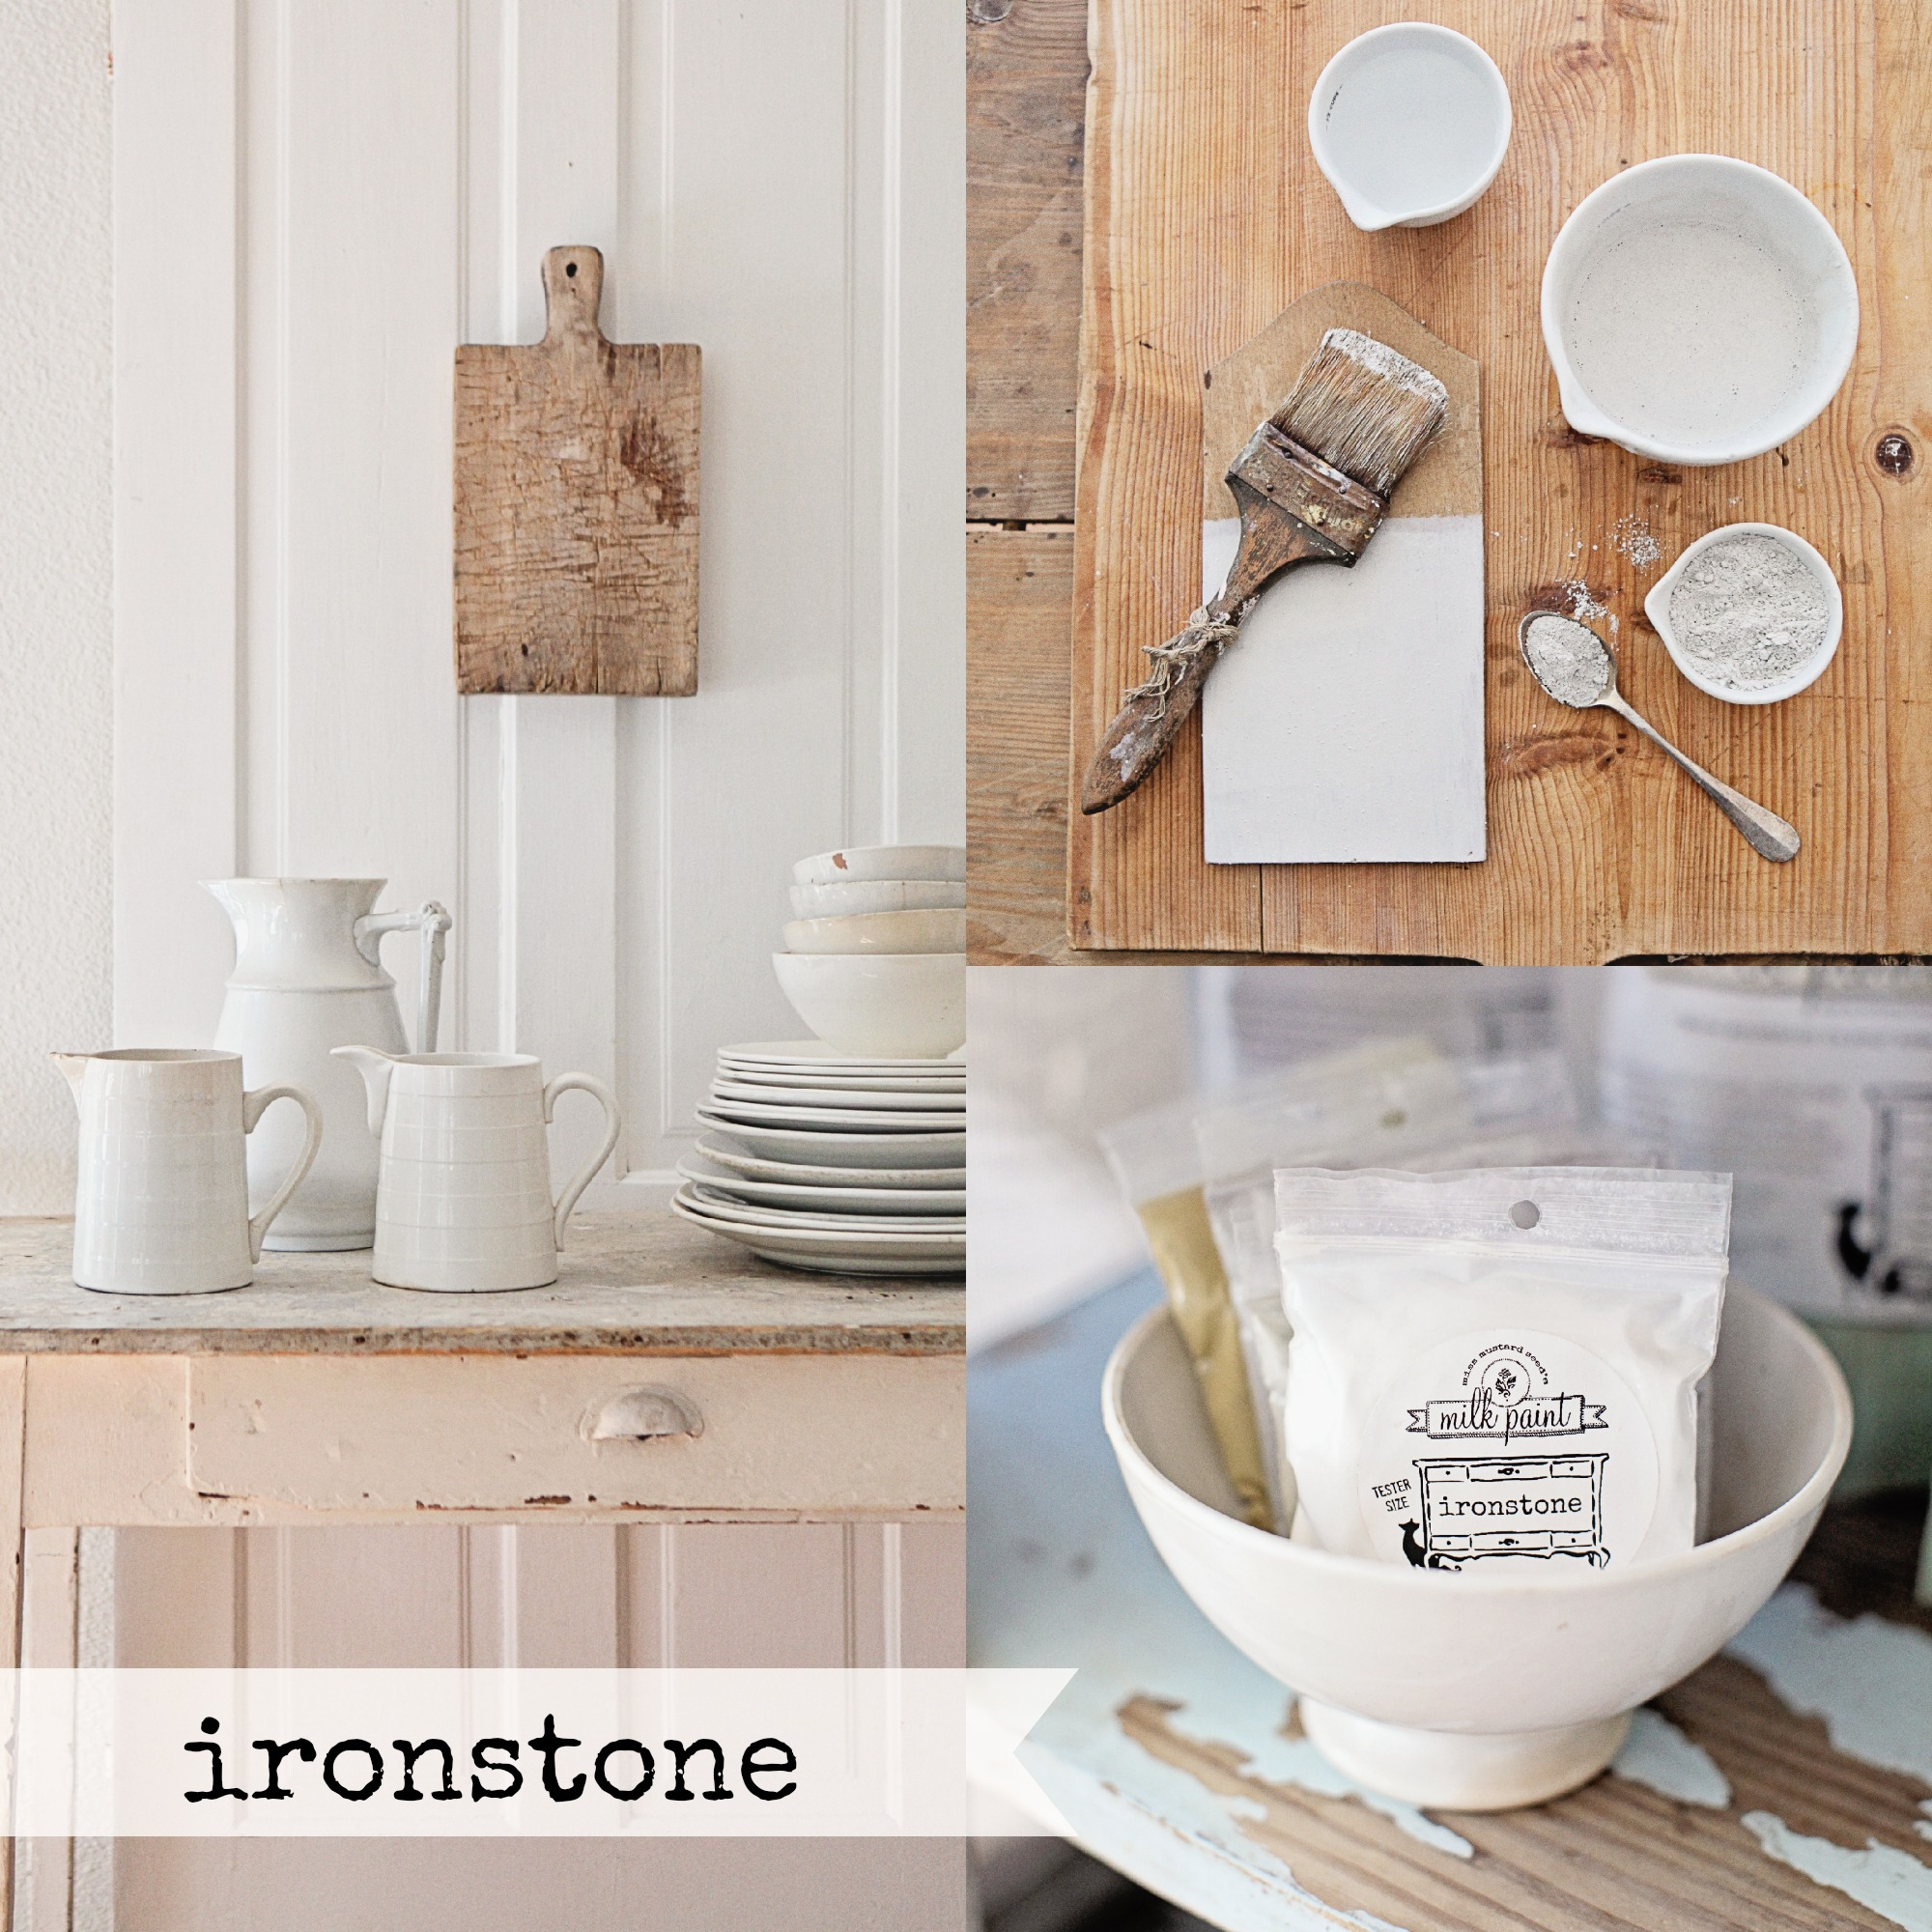 Ironstone-Collage